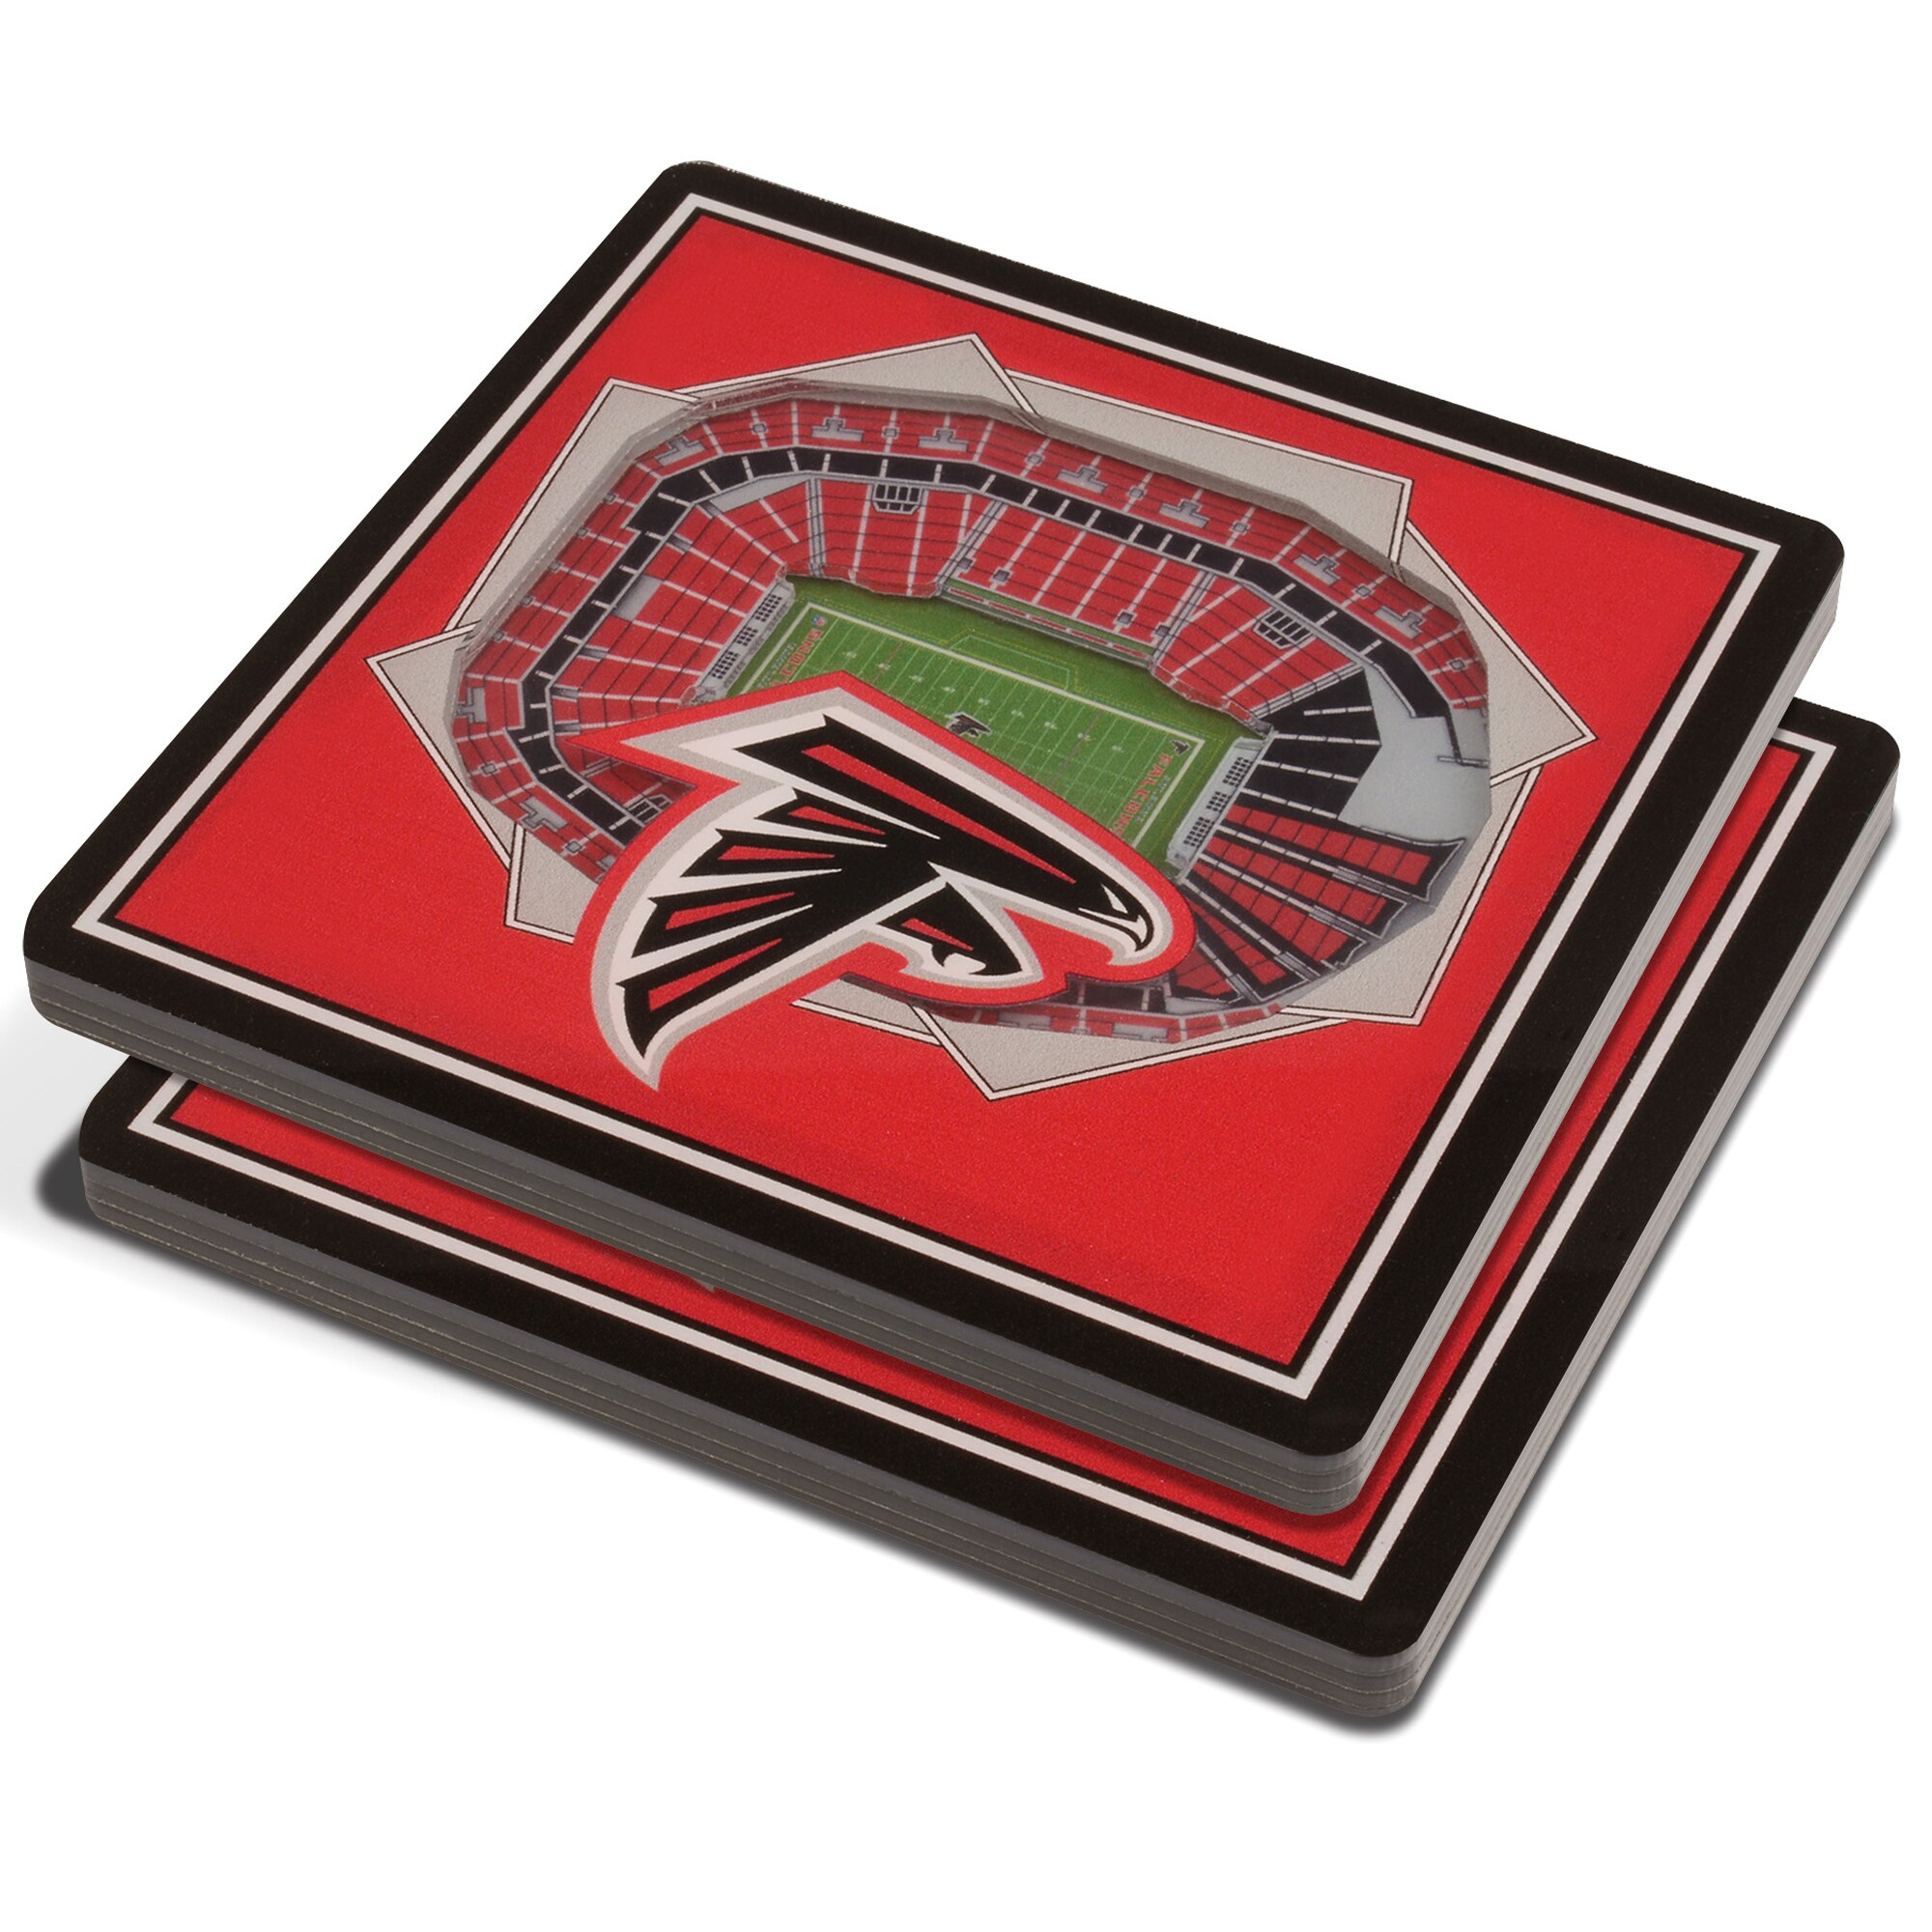 Atlanta Falcons 3D StadiumViews Coasters - Red